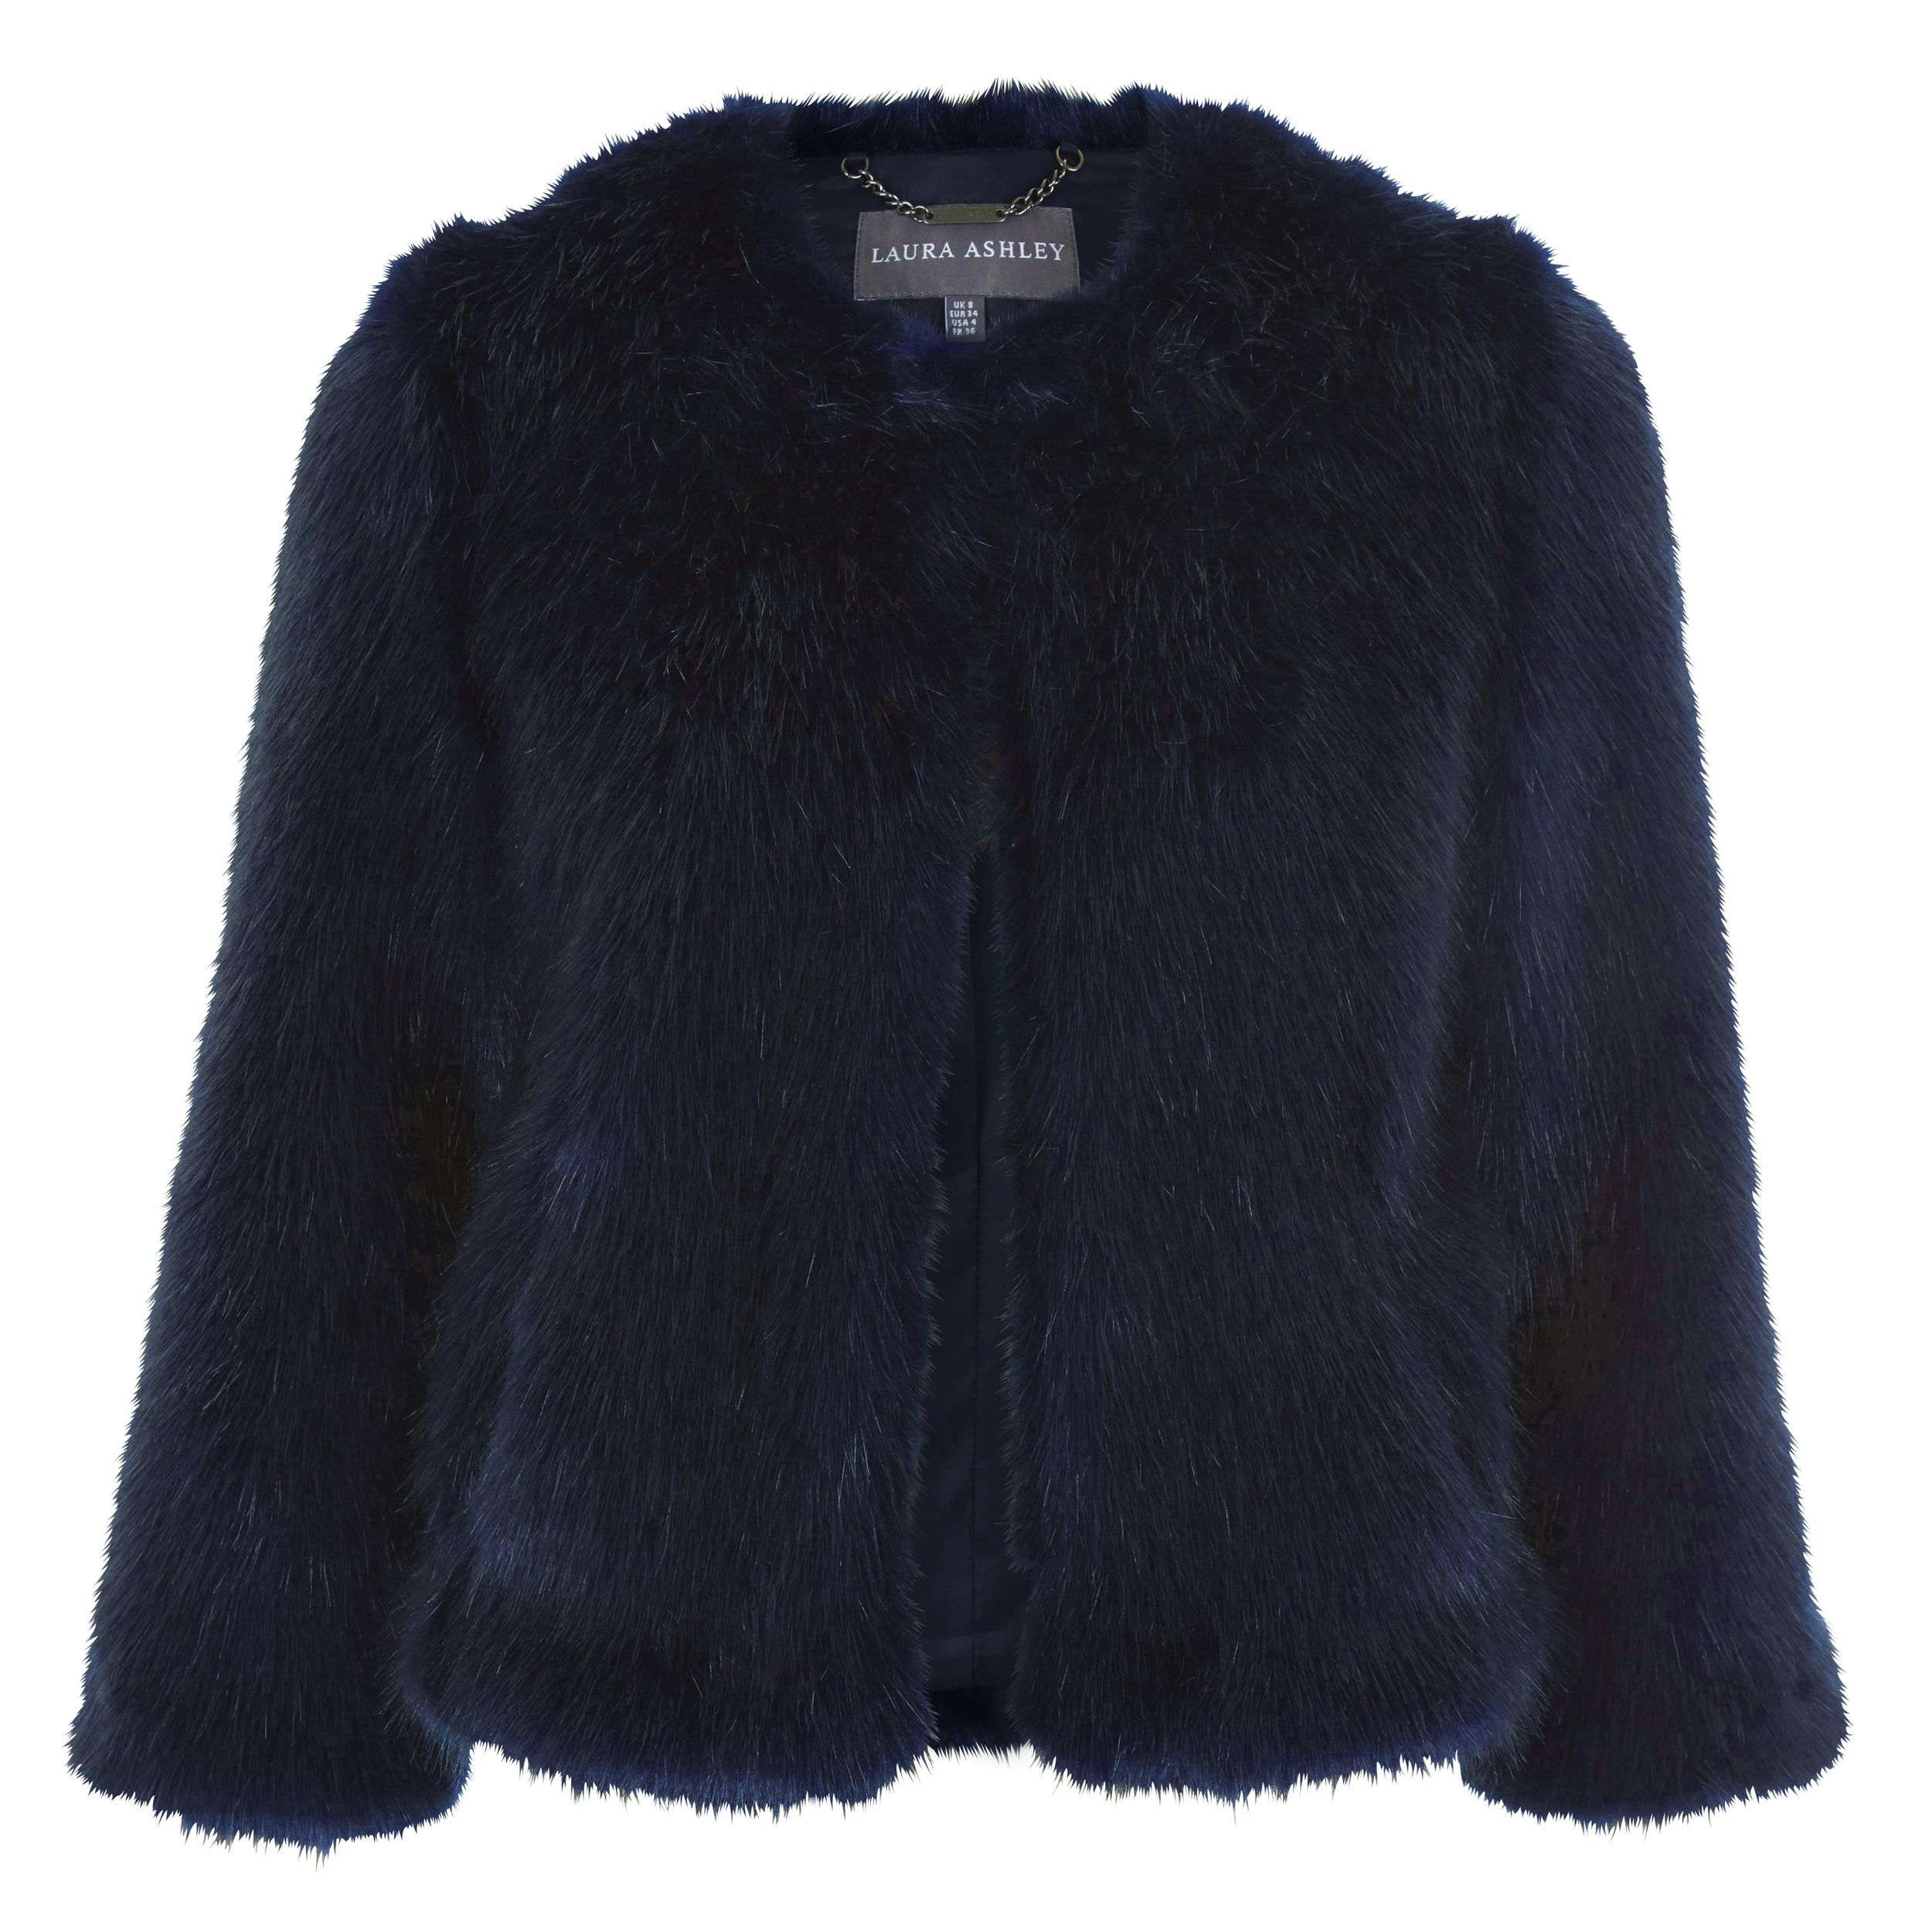 Ashley Fur: Laura Ashley Short Faux Fur Coat